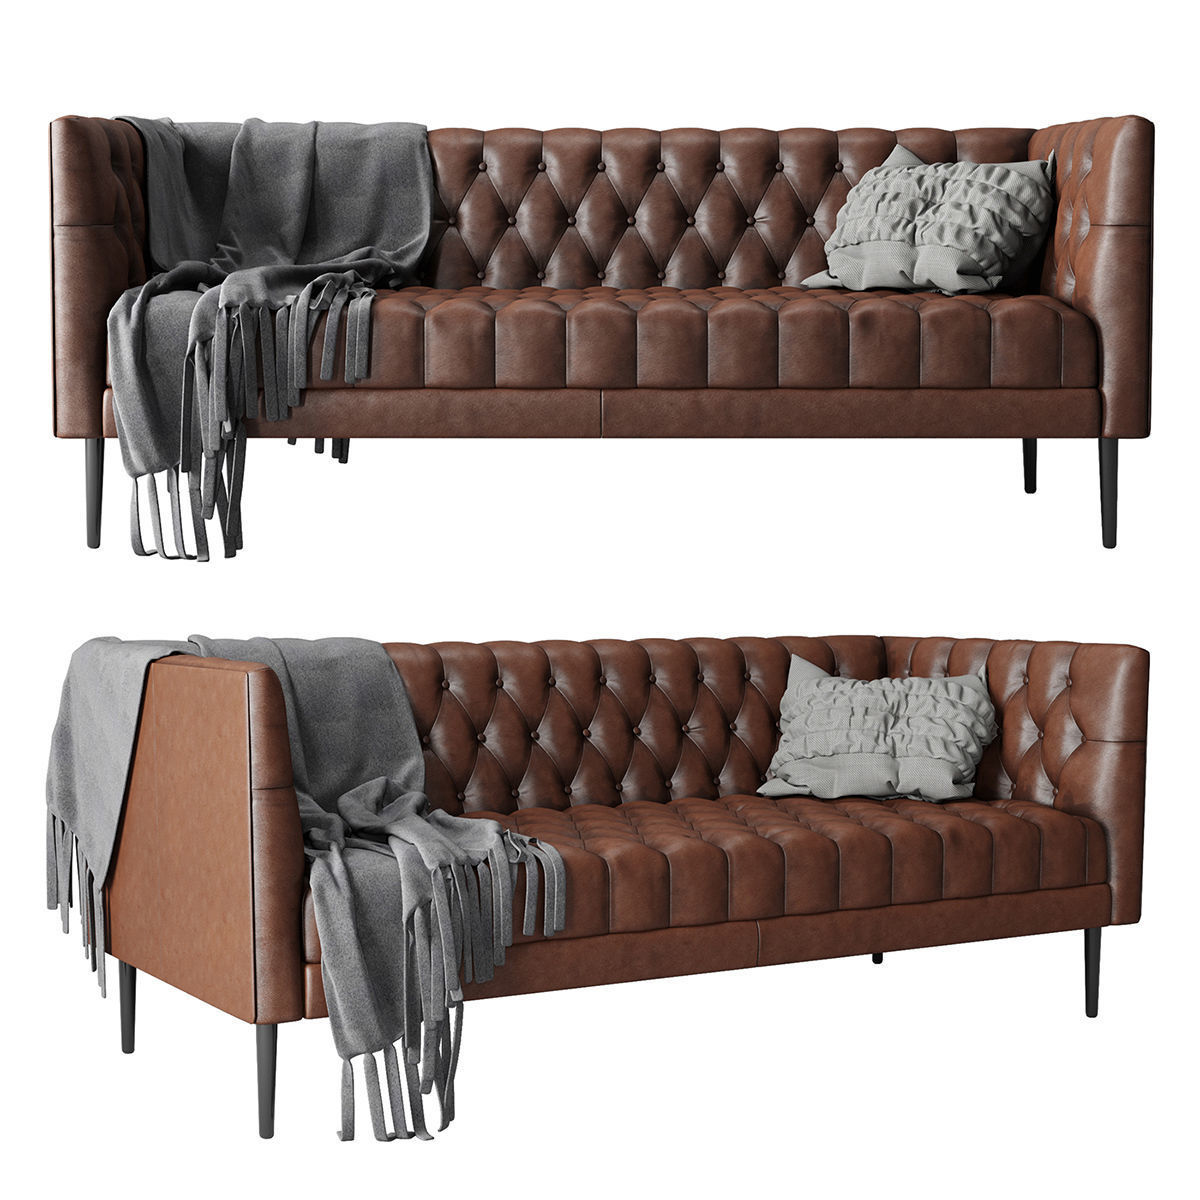 Astonishing Joybird Leather Sofa Download Free Architecture Designs Grimeyleaguecom